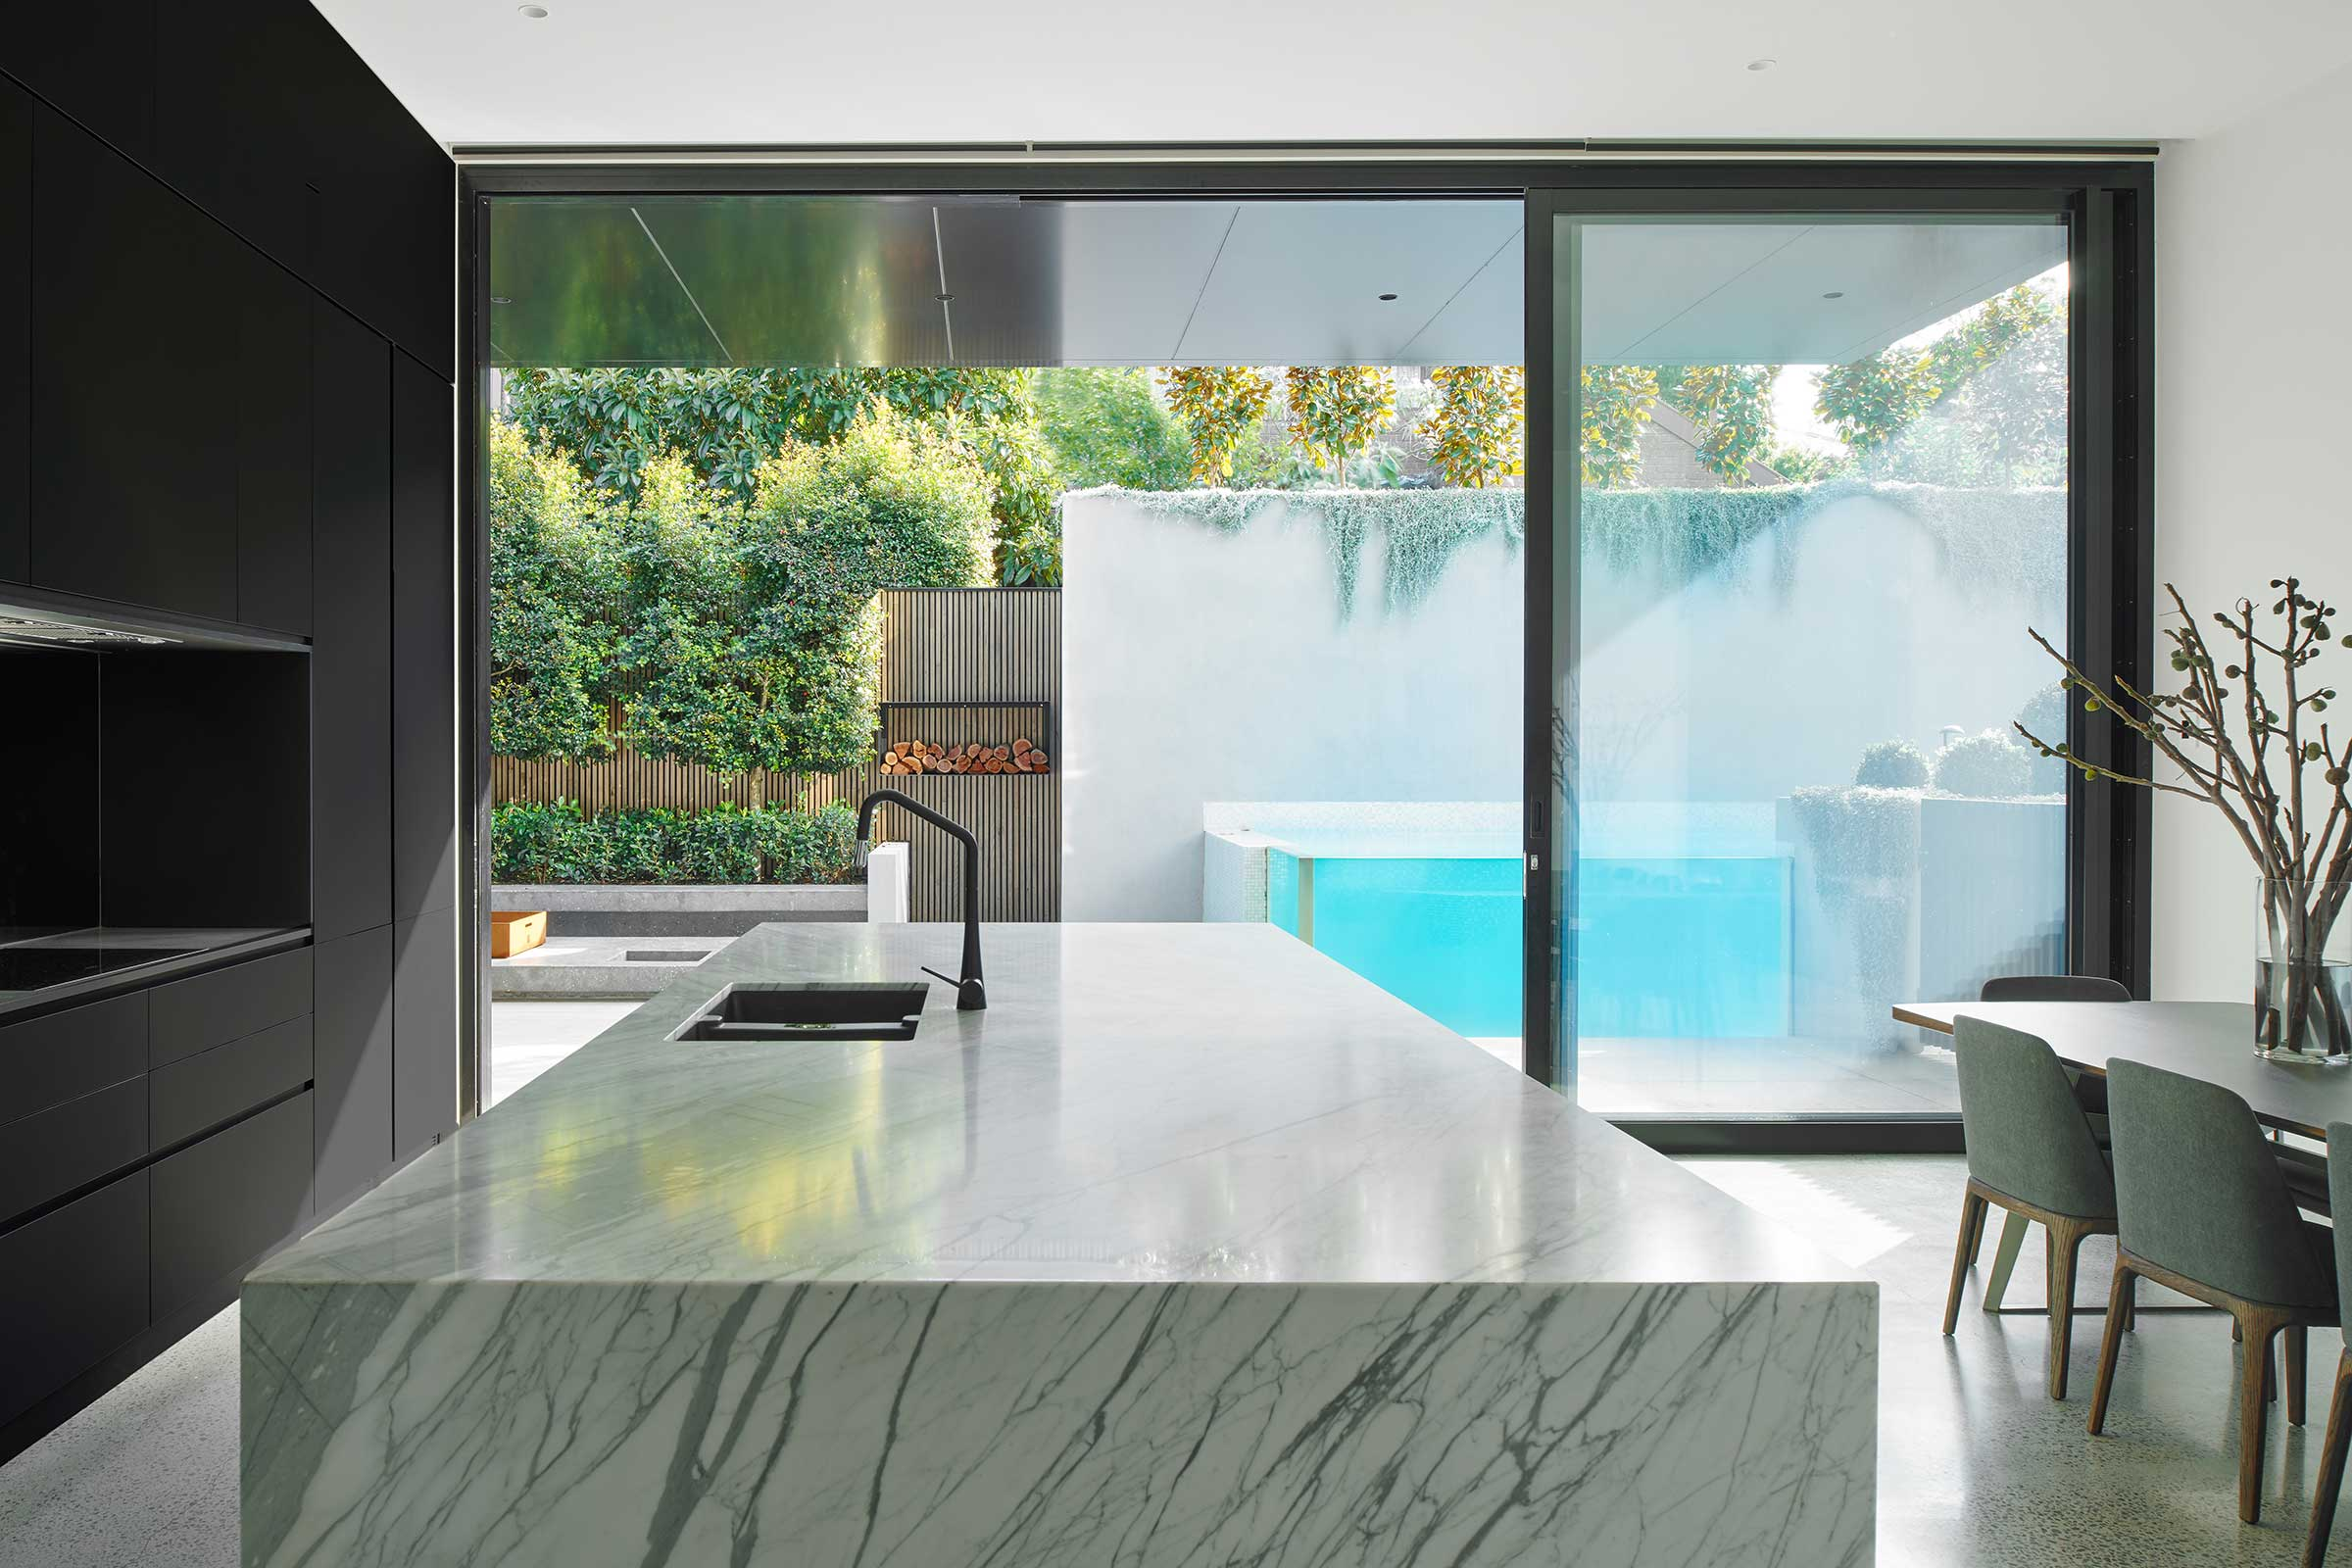 23_taouk_architects_bramley_court_veeral_2657.jpg